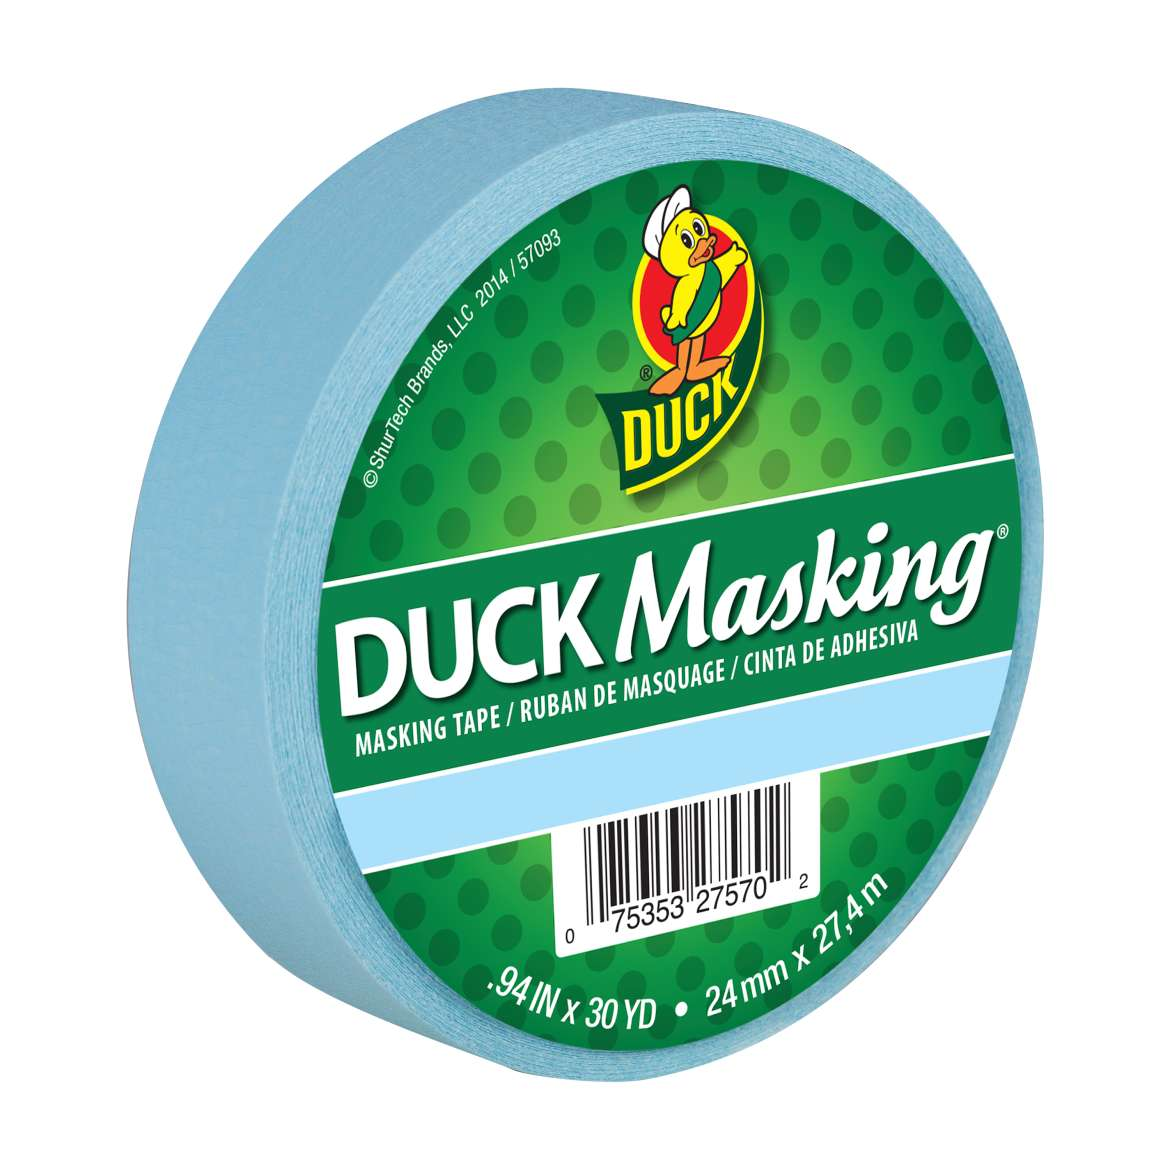 Duck Masking® Color Masking Tape - Blue, .94 in. x 30 yd. Image